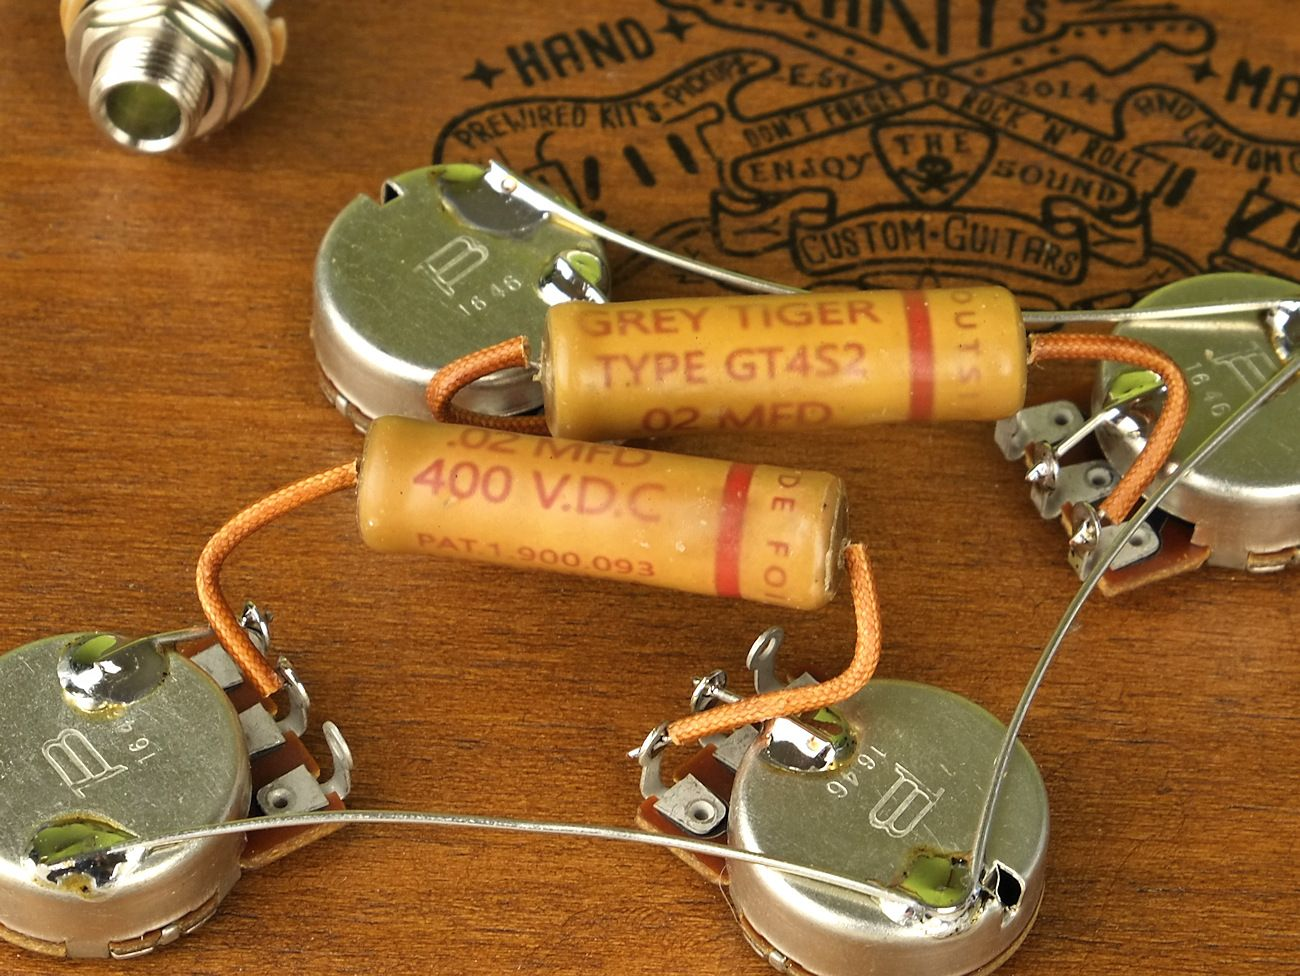 small resolution of arty s custom guitars vintage pre wired prewired kit grey tiger bourns wiring assembly harness set